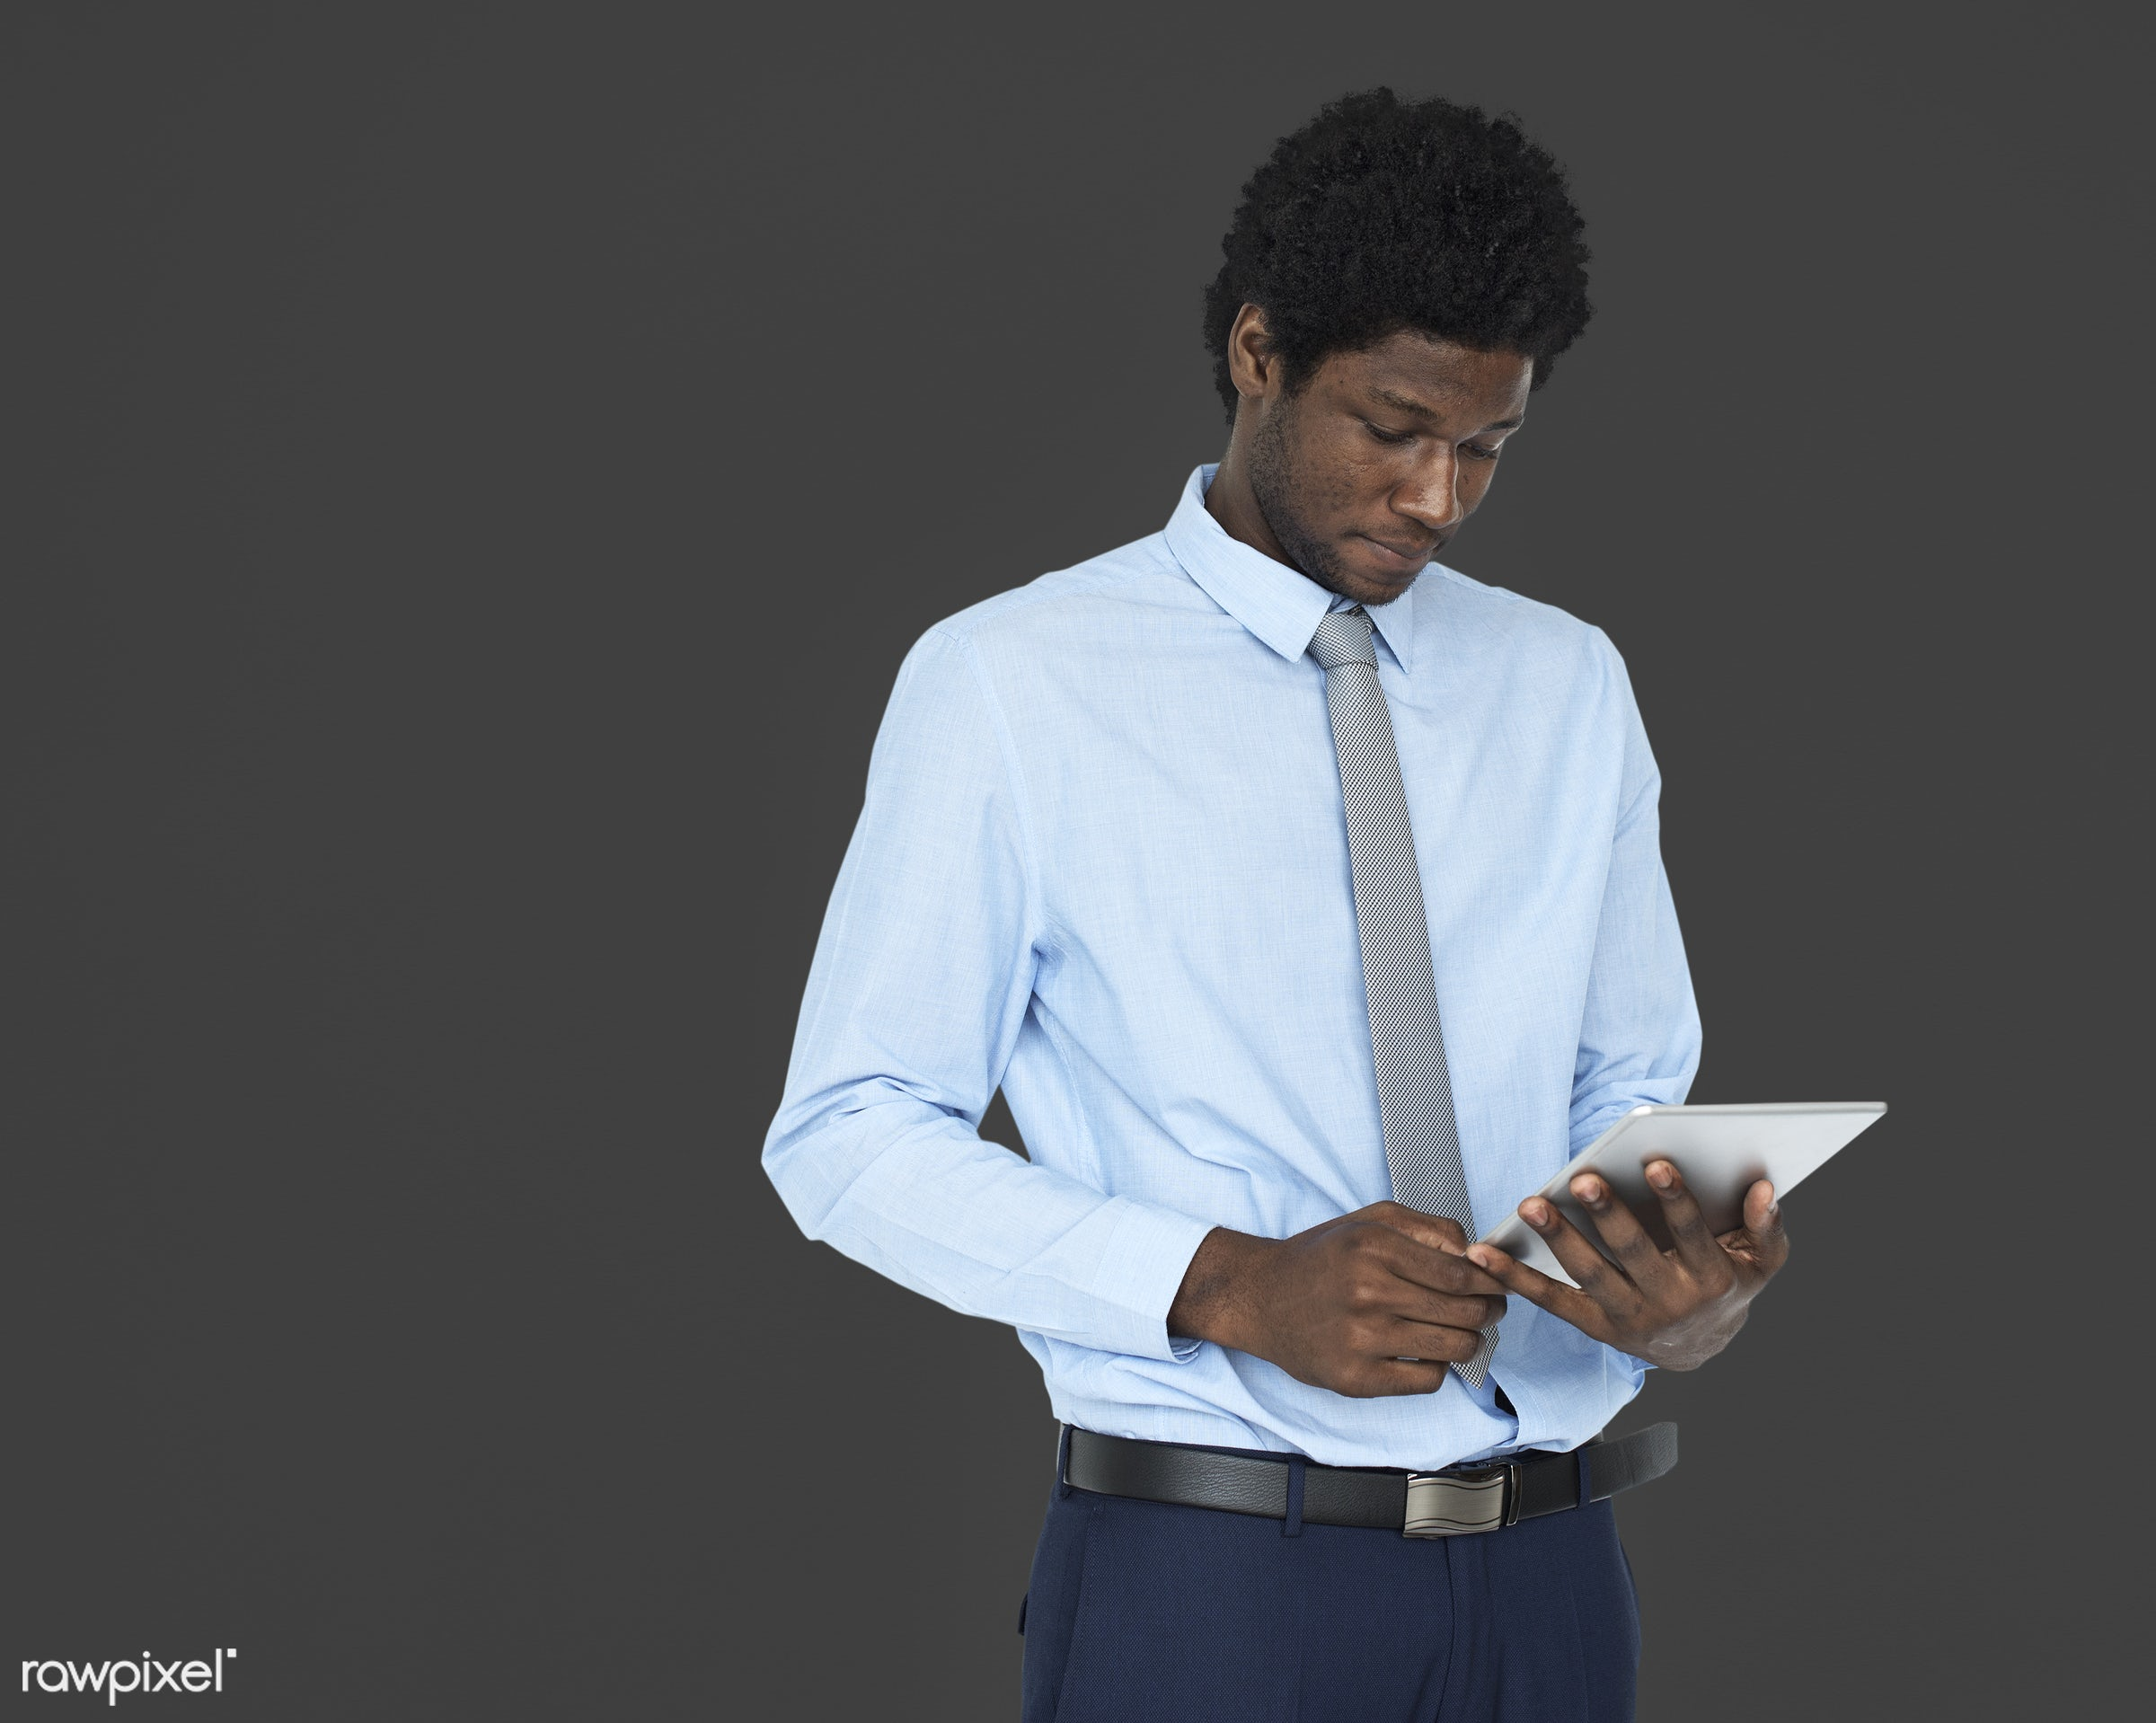 expression, using, person, white collar worker, people, working, black, isolated, connection, african descent, emotion,...